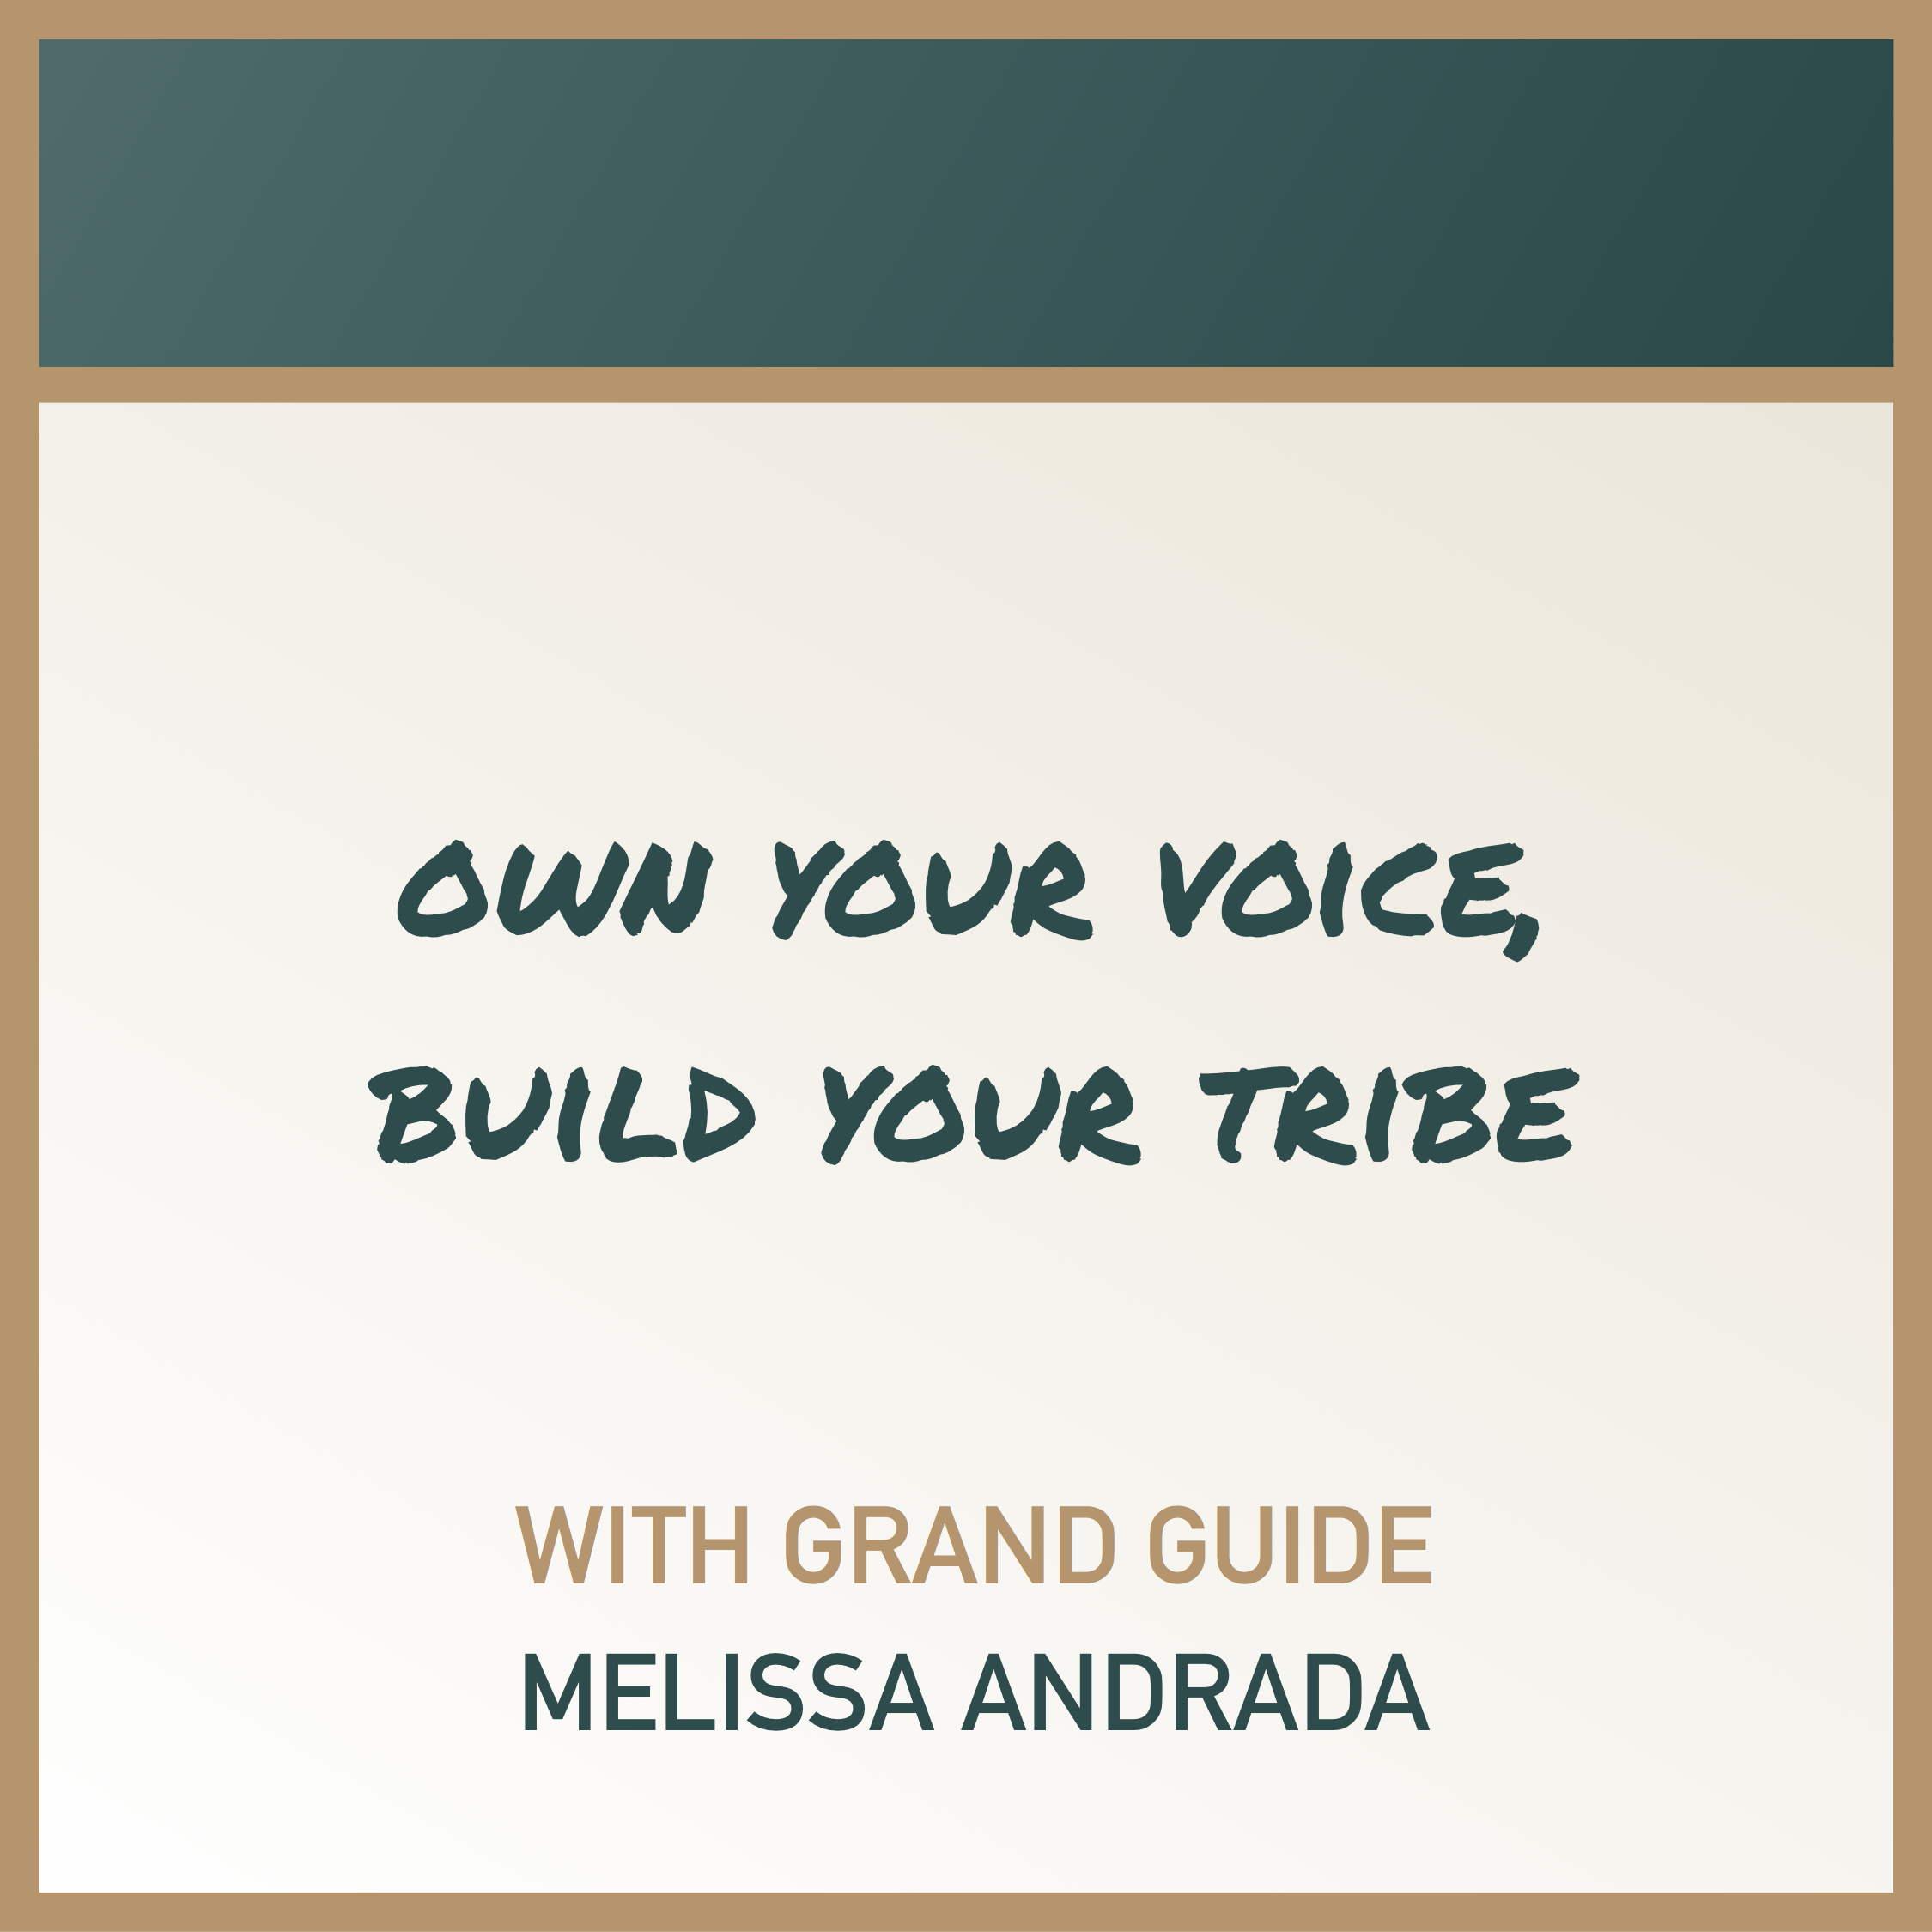 Own your voice, build your tribe. .png